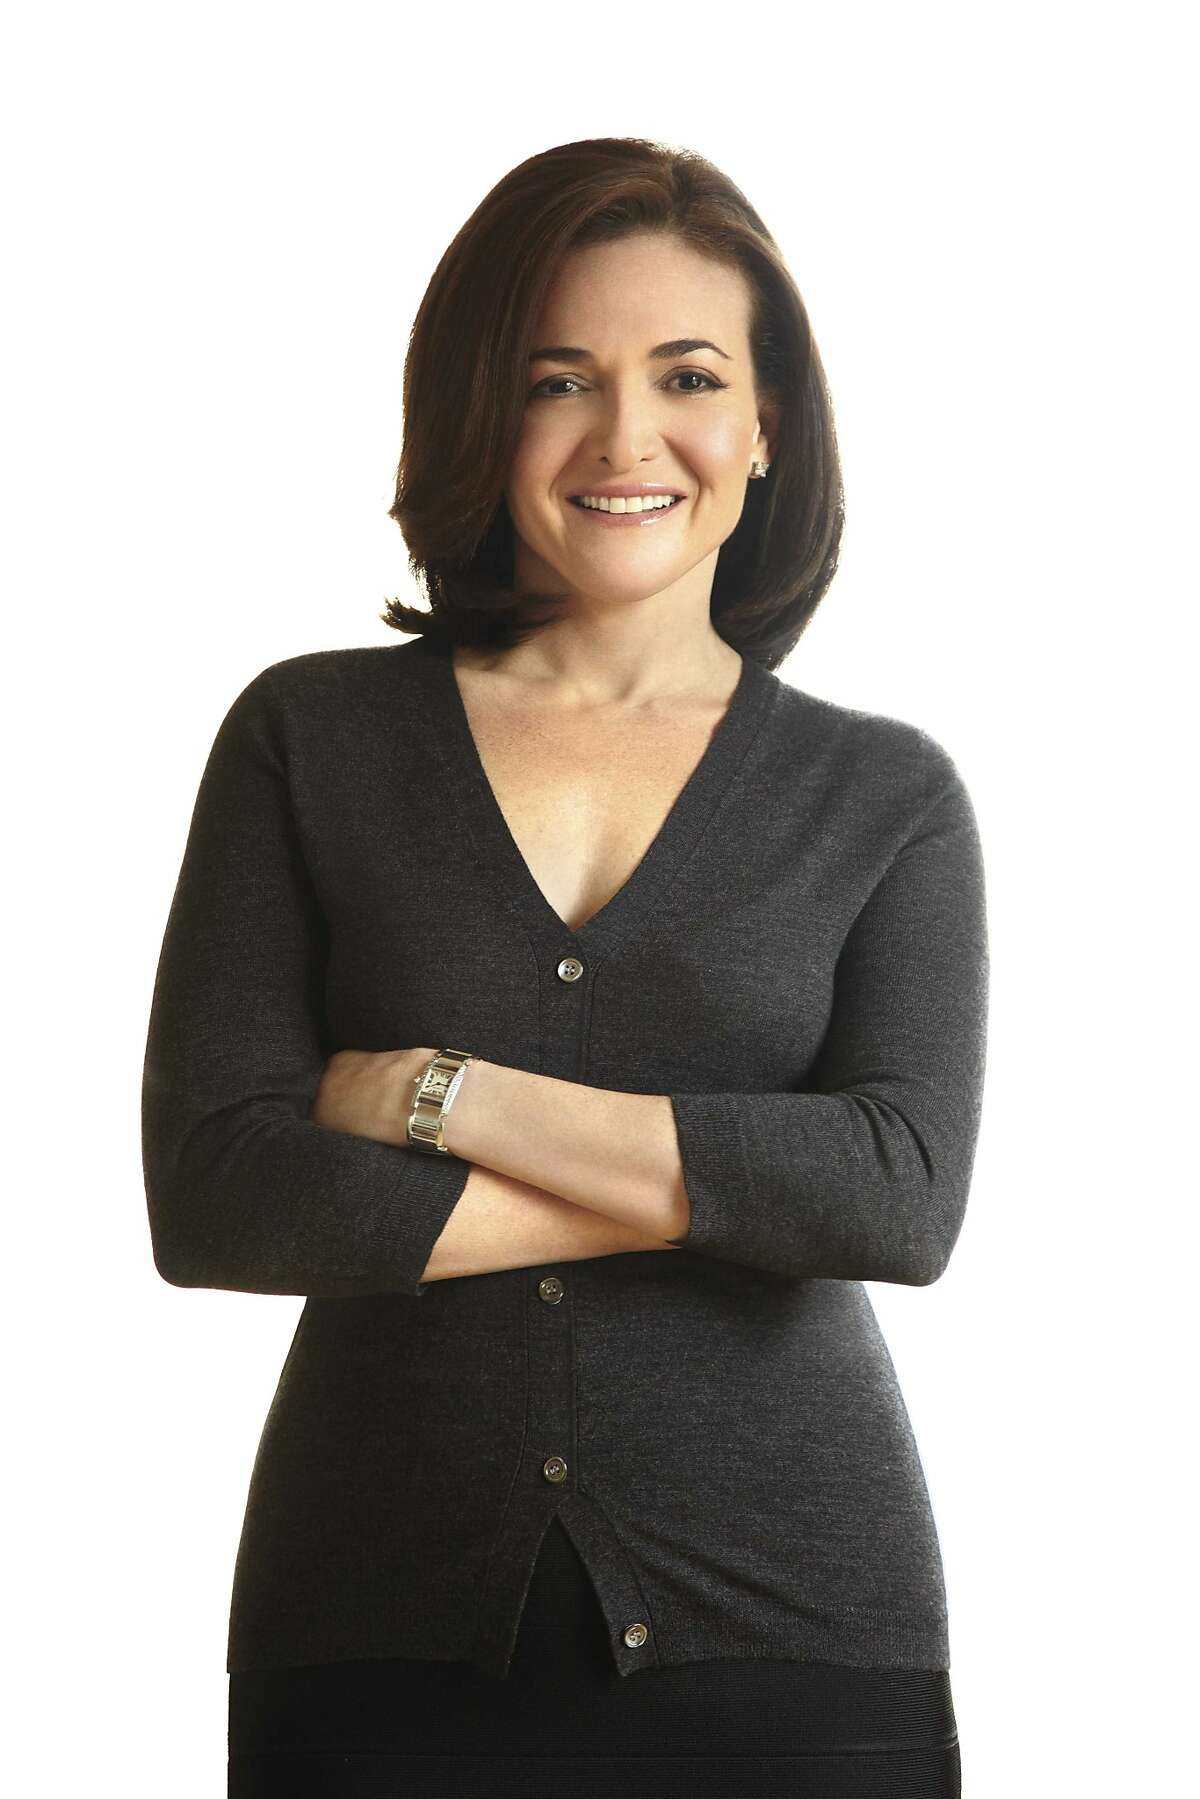 Sheryl Sandberg. Claim to fame: COO of Facebook. Author of best-selling feminist tome